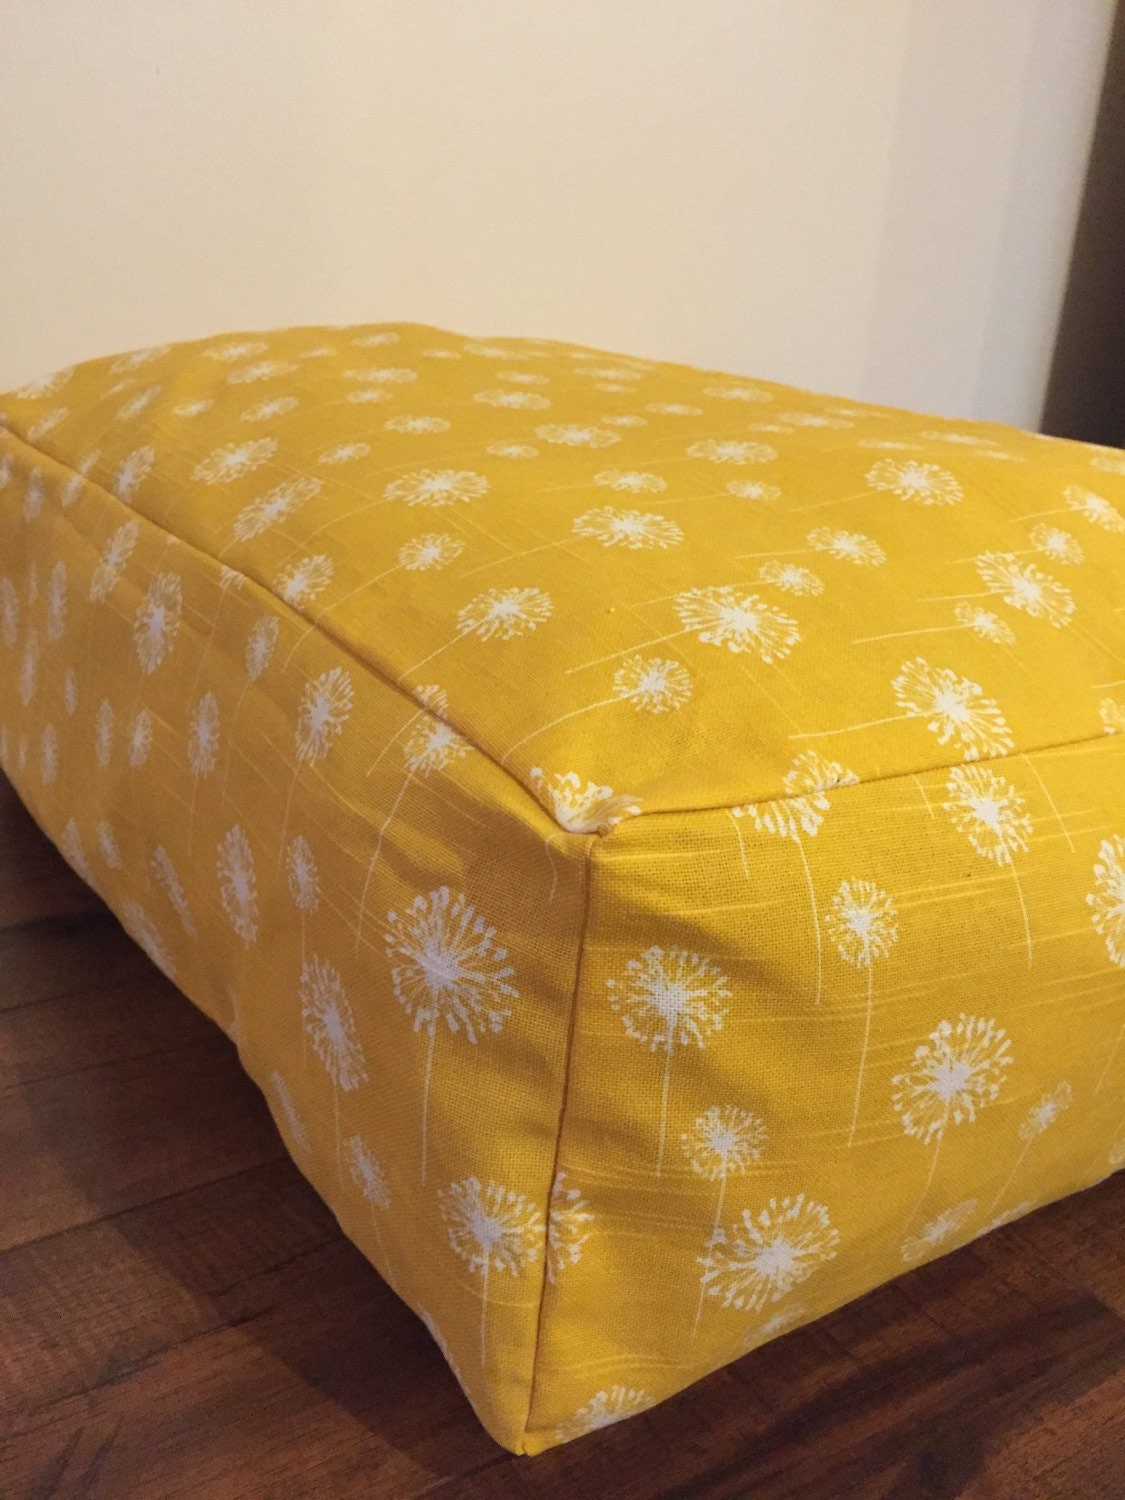 Large Floor Pillow Bean Bag Dandelion Pattern With Zipper